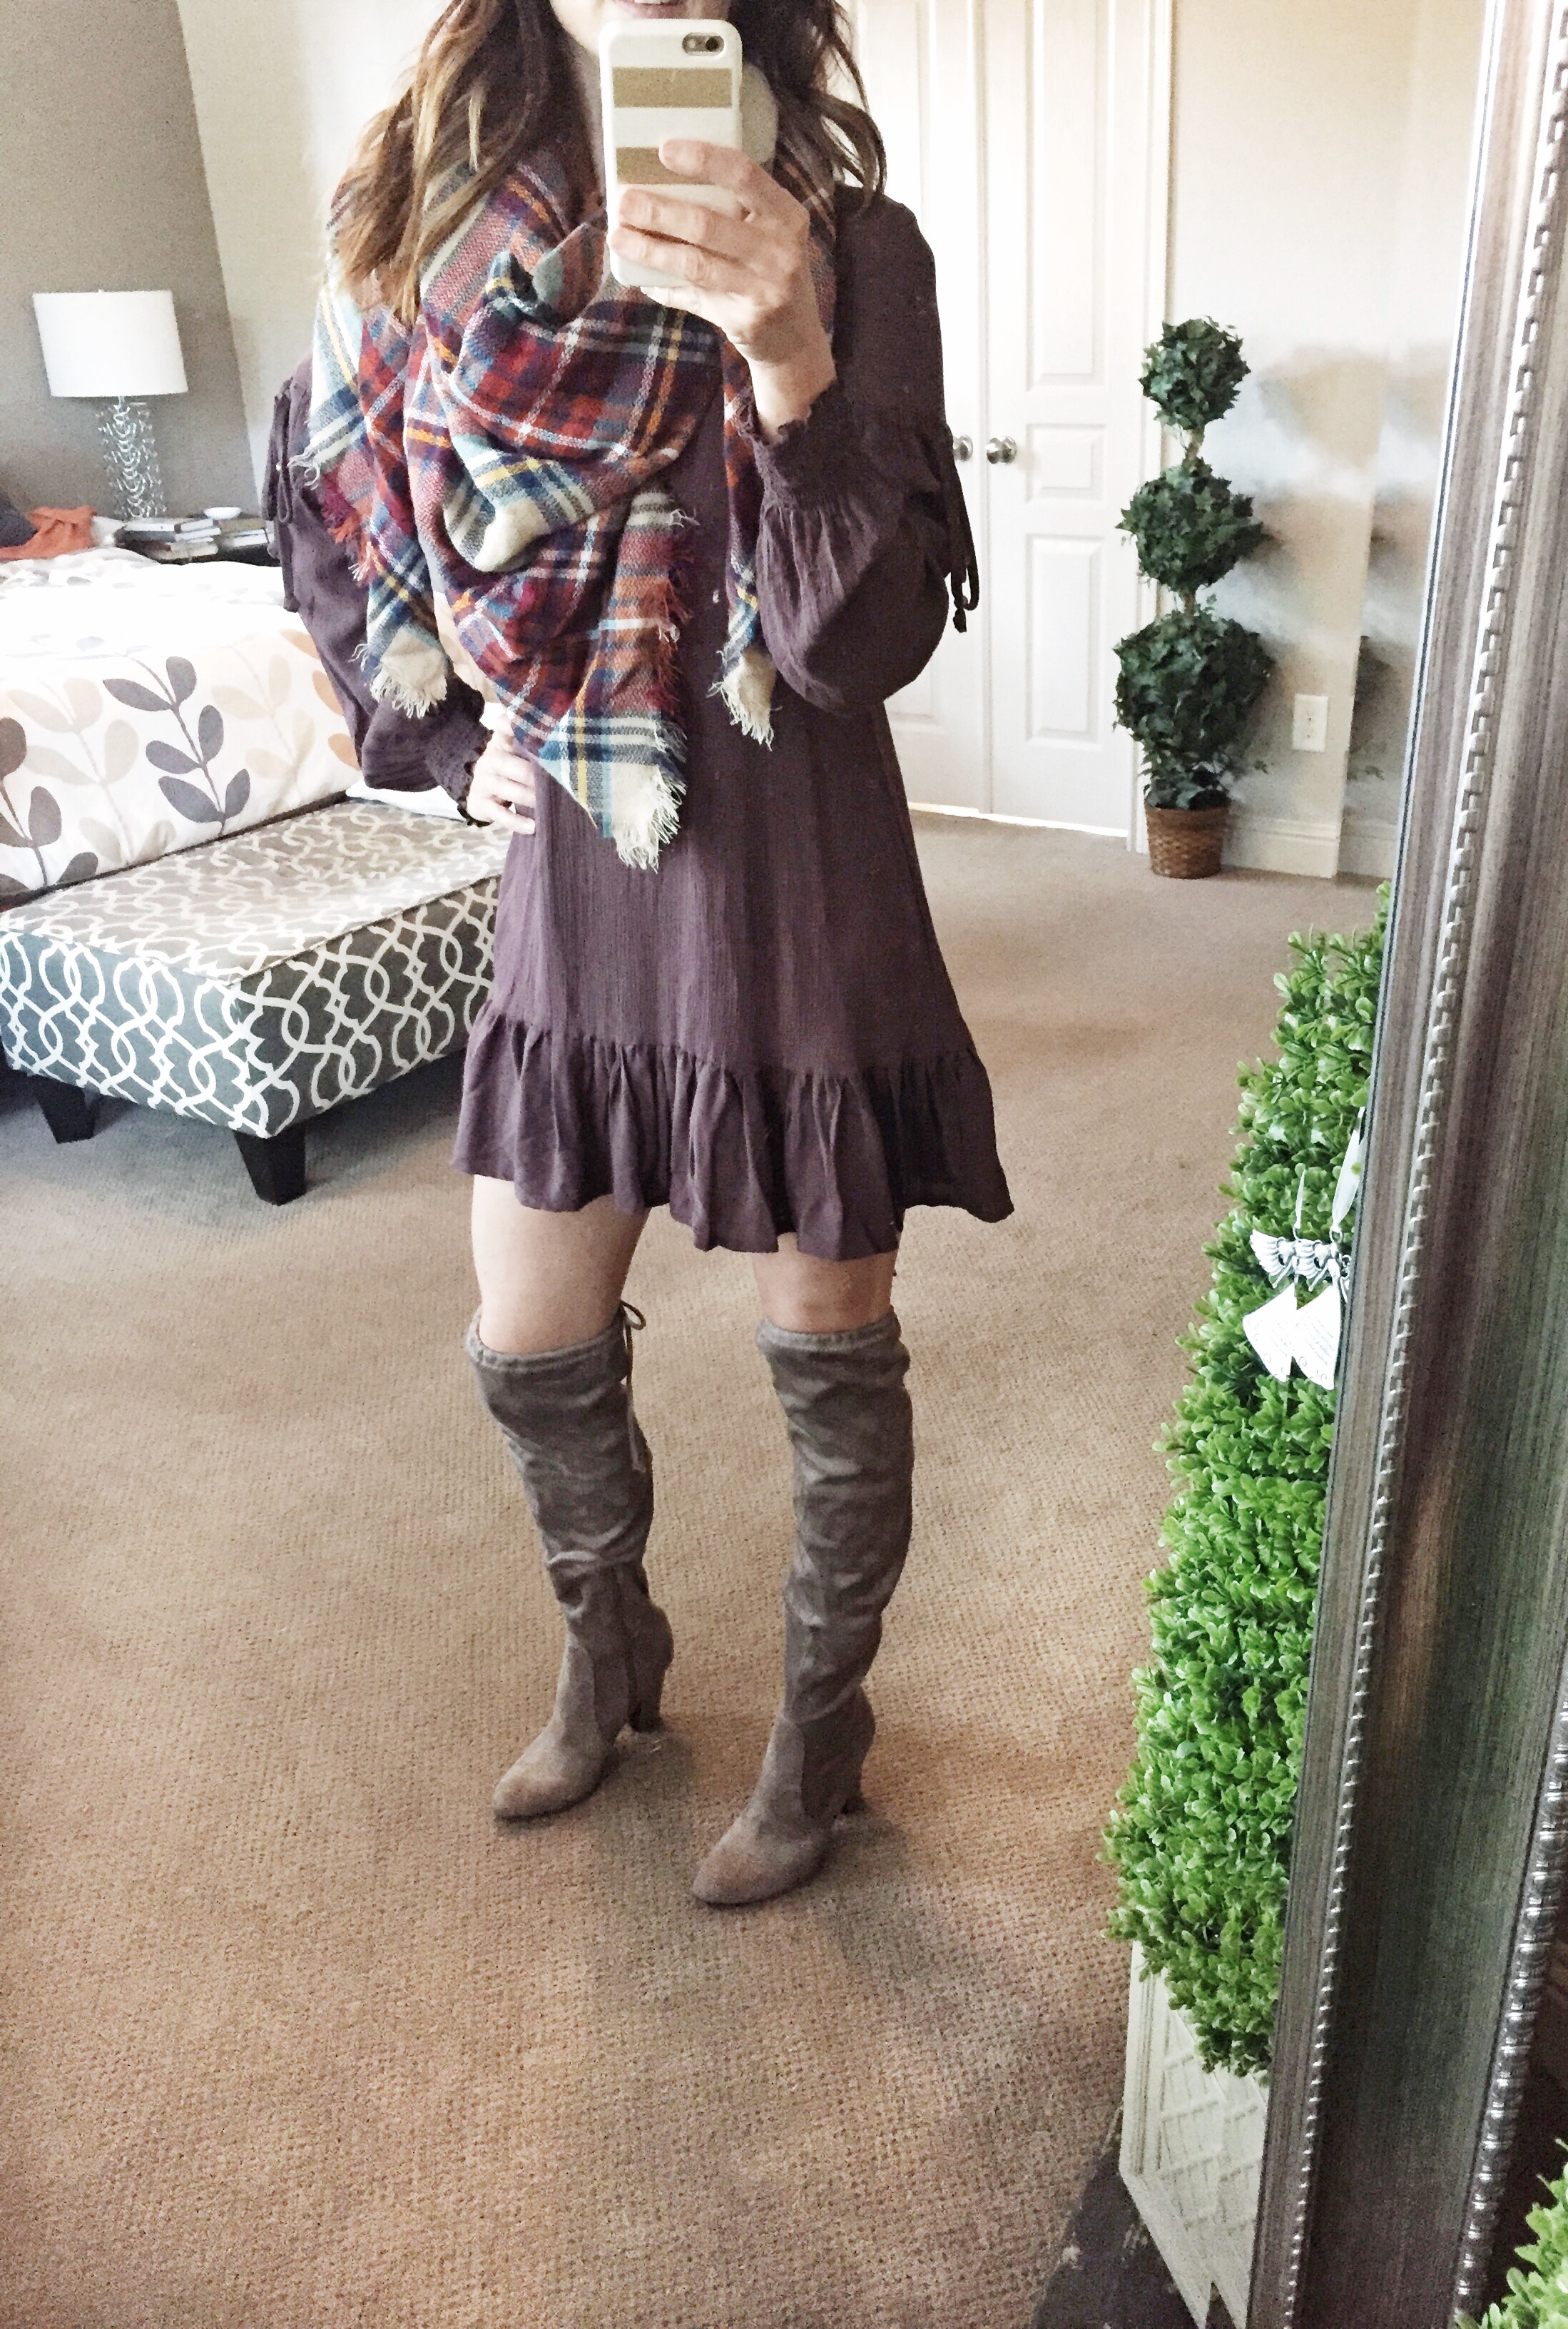 over the knee boots, yes, no, fall fashion, would you wear them, method39, mystyle, warrdobe stylist, your stylist, on the blog, try something new, layers